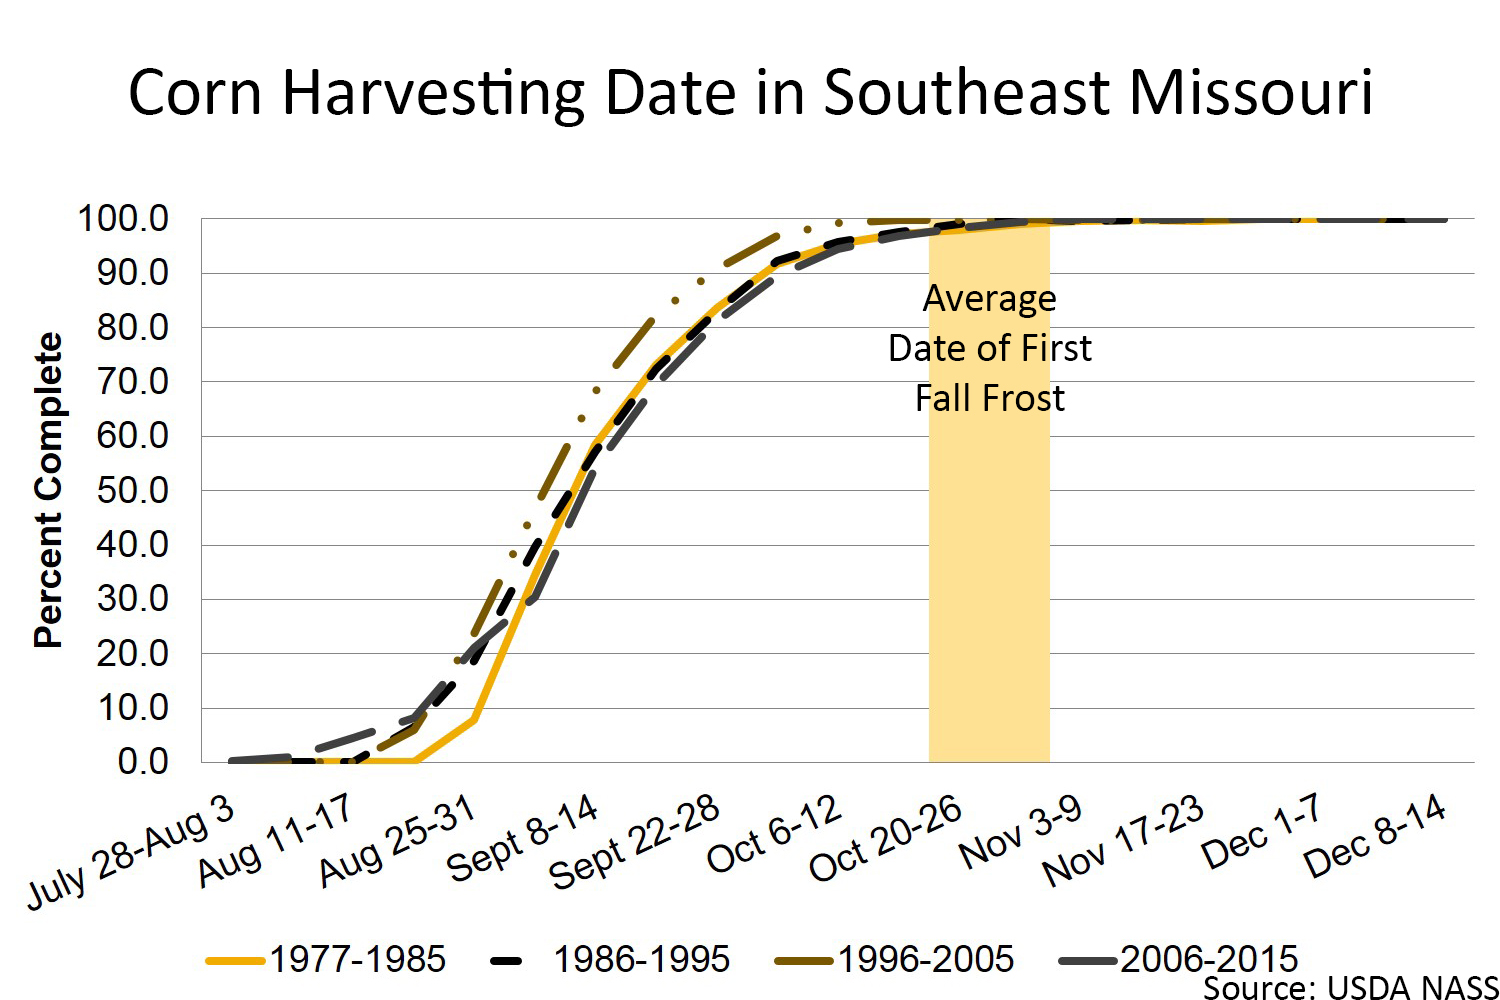 Corn harvesting date in southeast Missouri chart